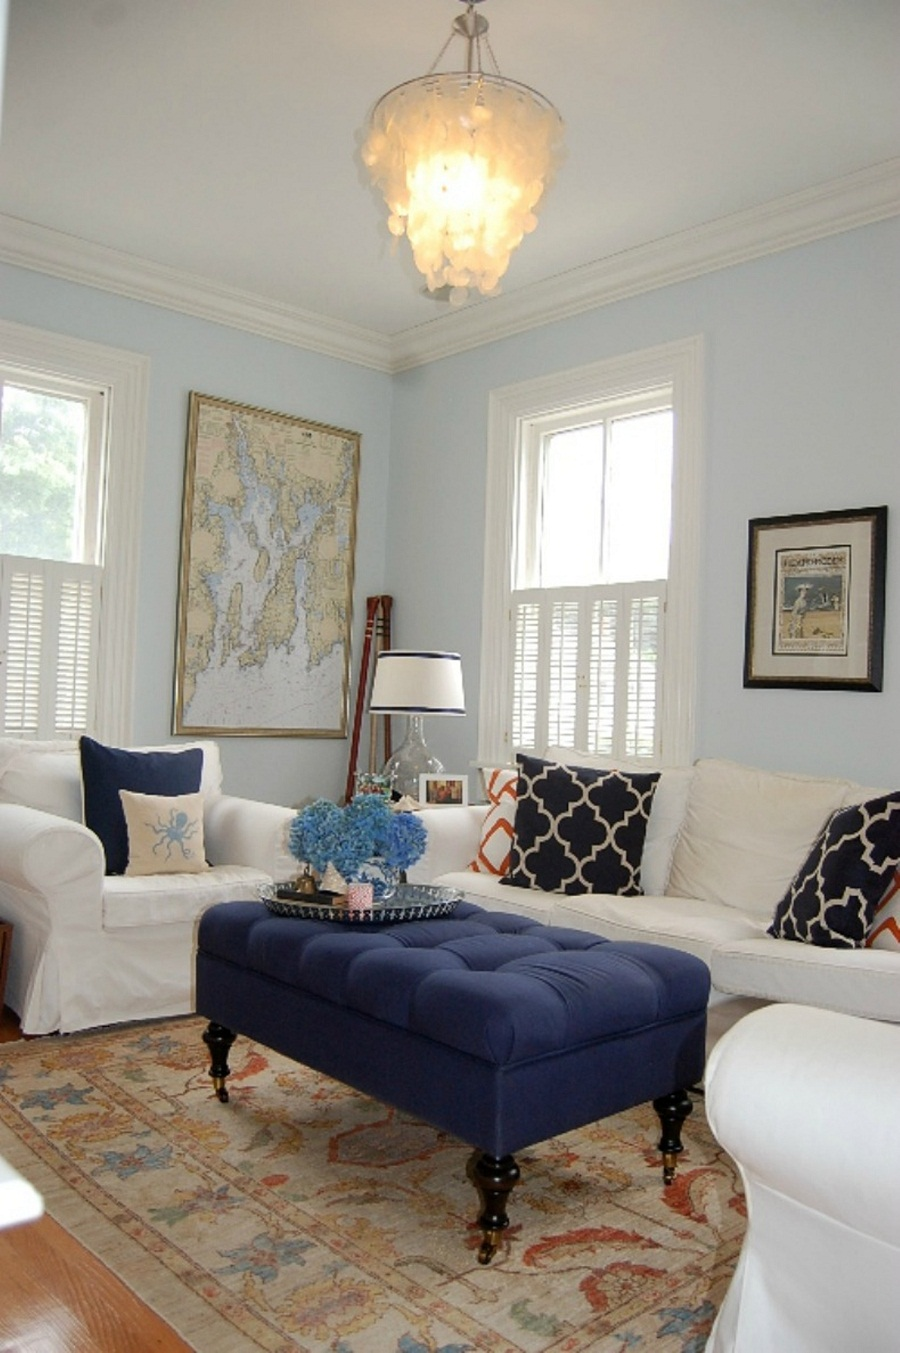 The Best Summer Paint Colors for Your Living Room5 summer paint colors for your living room The Best Summer Paint Colors for Your Living Room The Best Summer Paint Colors for Your Living Room5